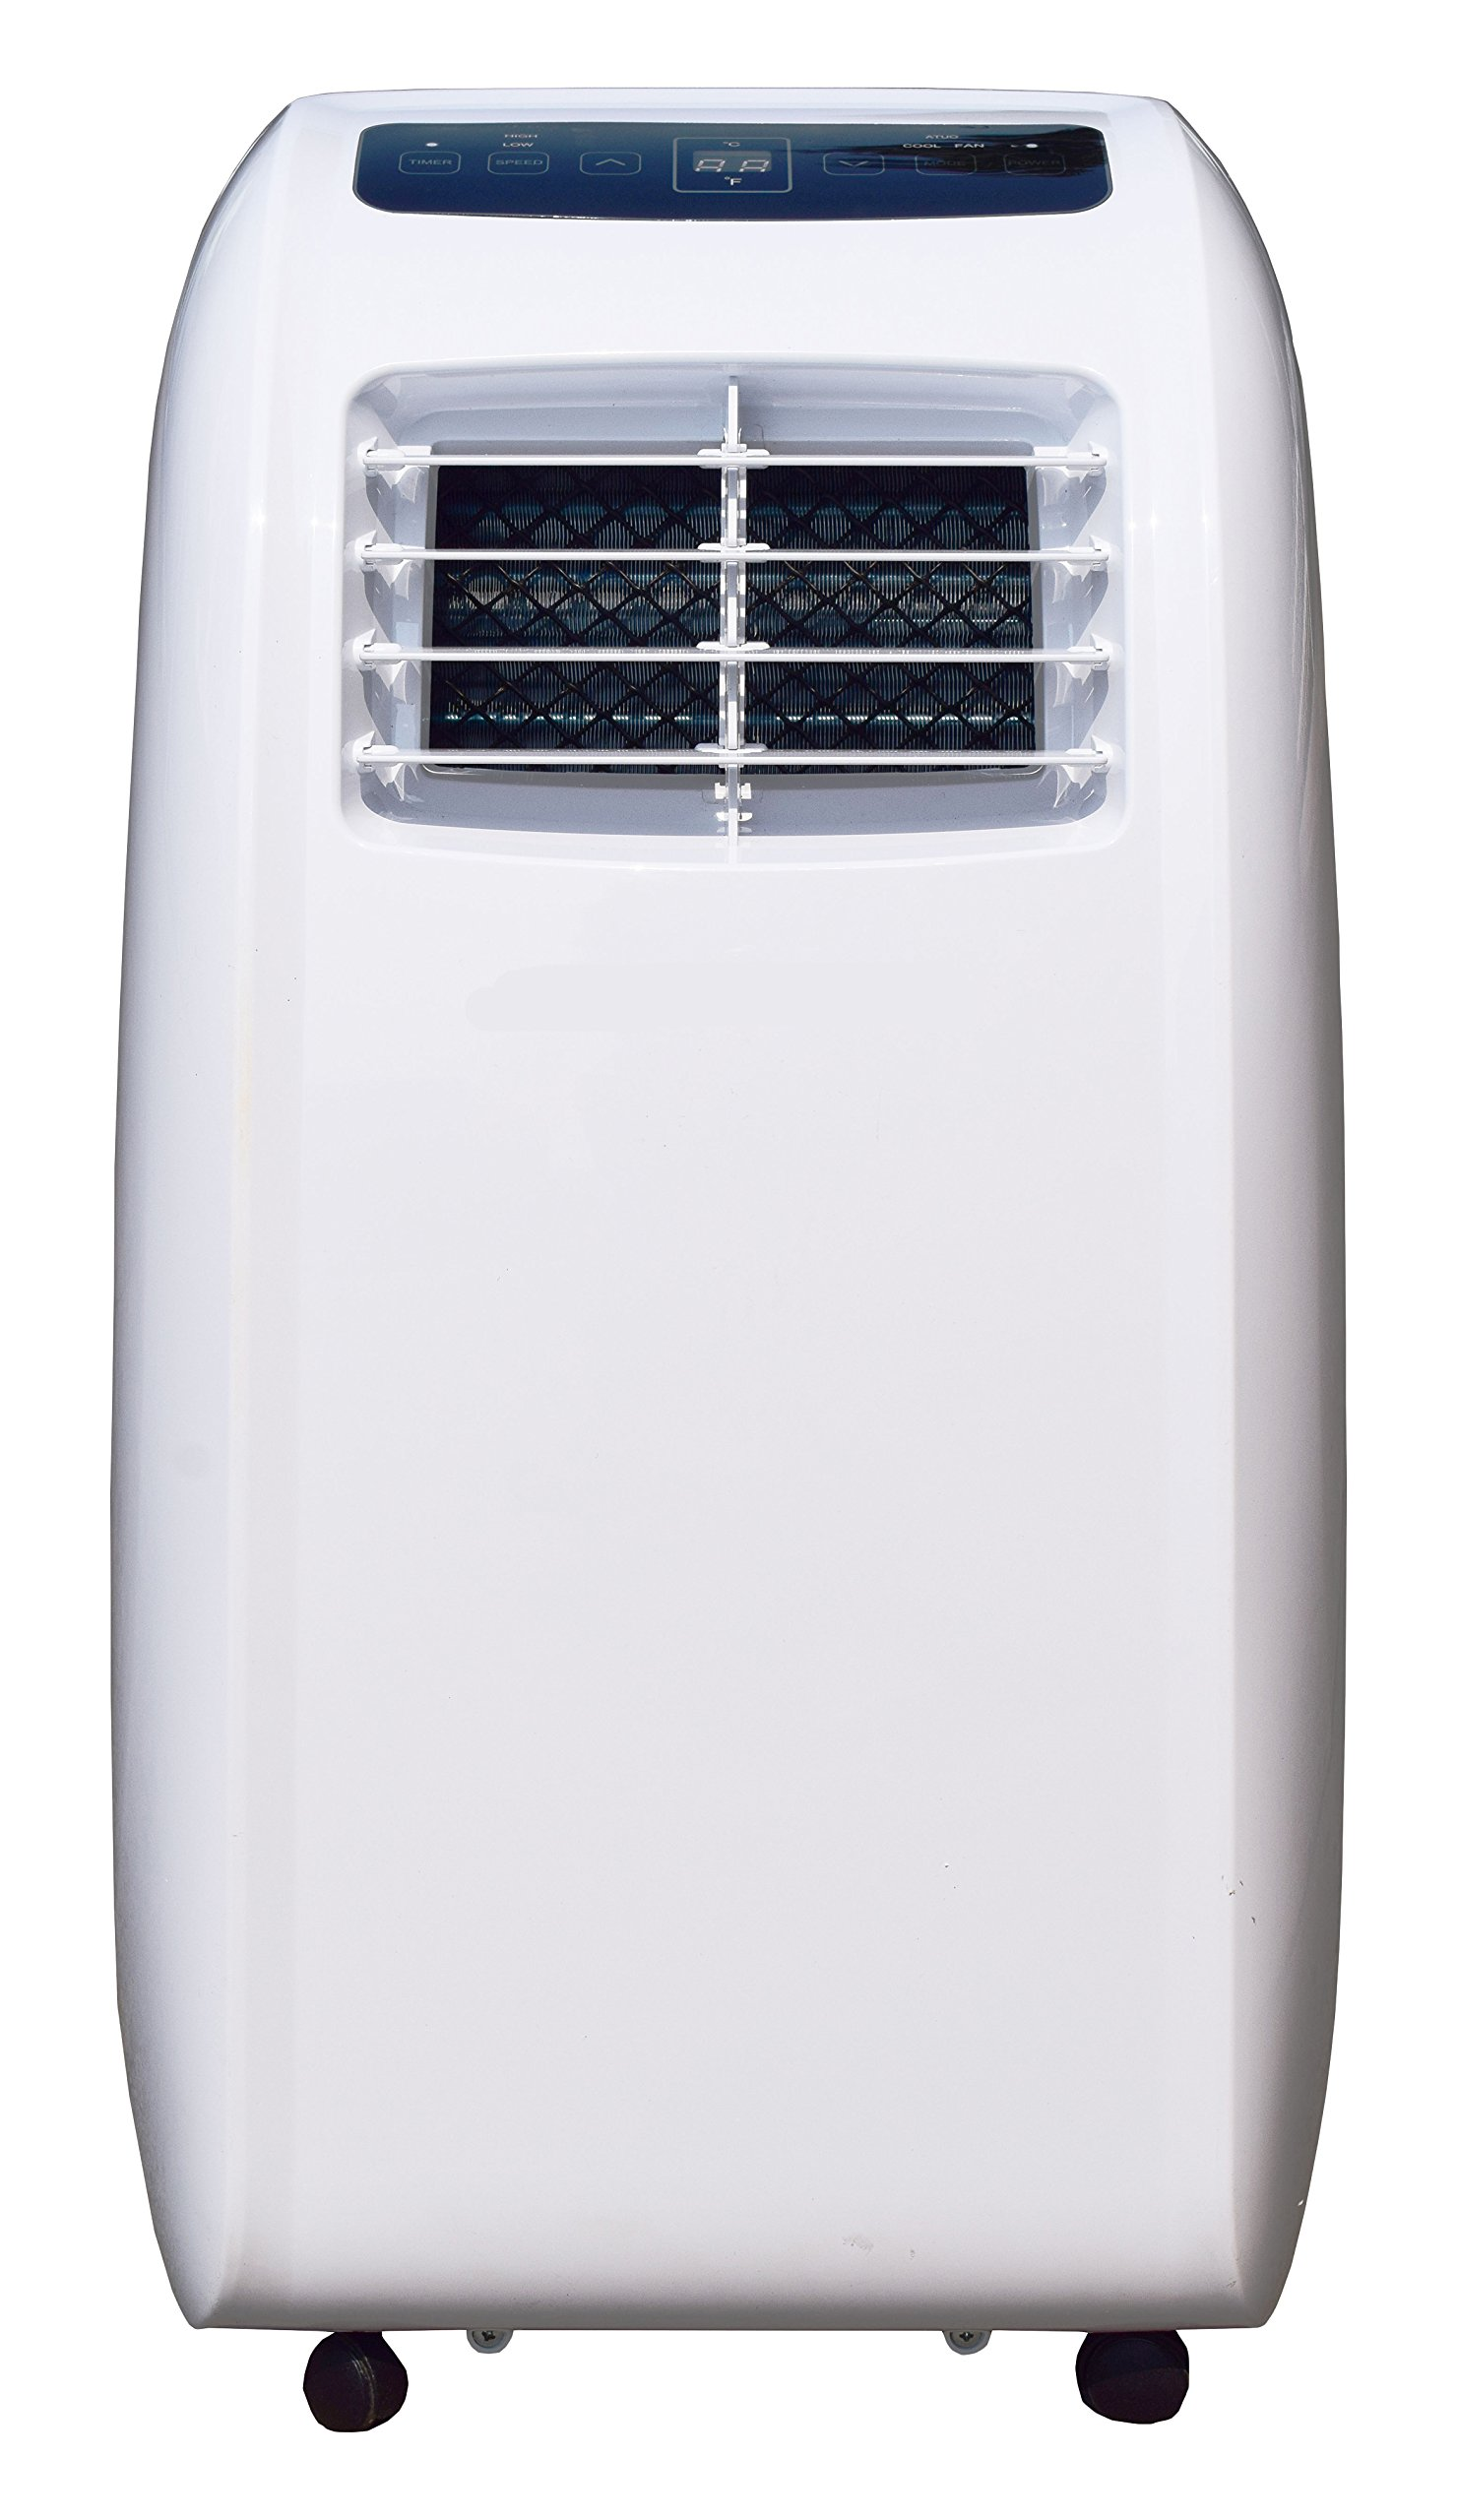 CCH YPLA-08C Portable Air Conditioner 1 Ultra compact for easy handling and positioning. Weighs only 47 lbs 8,000 BTU's of cooling power keeps a room up to250 sq. Ft. Cool and comfortable and partially Cools an Area up to 350 sq.Ft Washable and reusable air filter saves money on Replacements